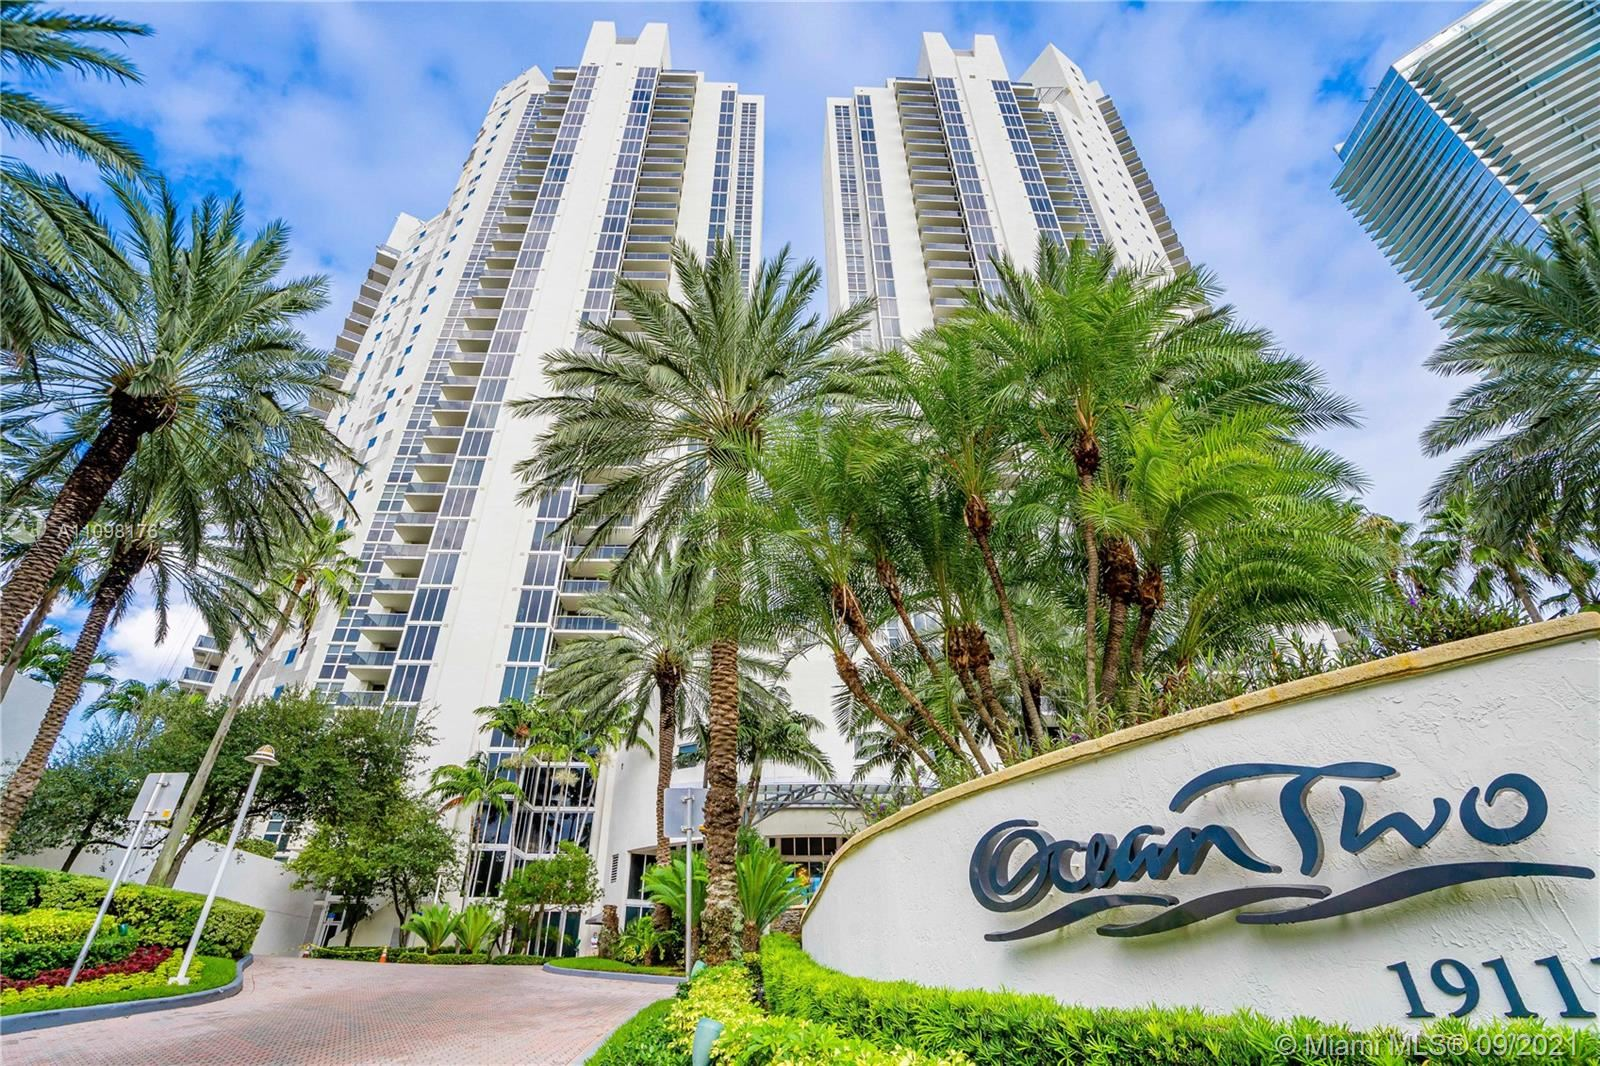 19111 Collins Ave #2906, Sunny Isles, FL 33160 - #: A11098176